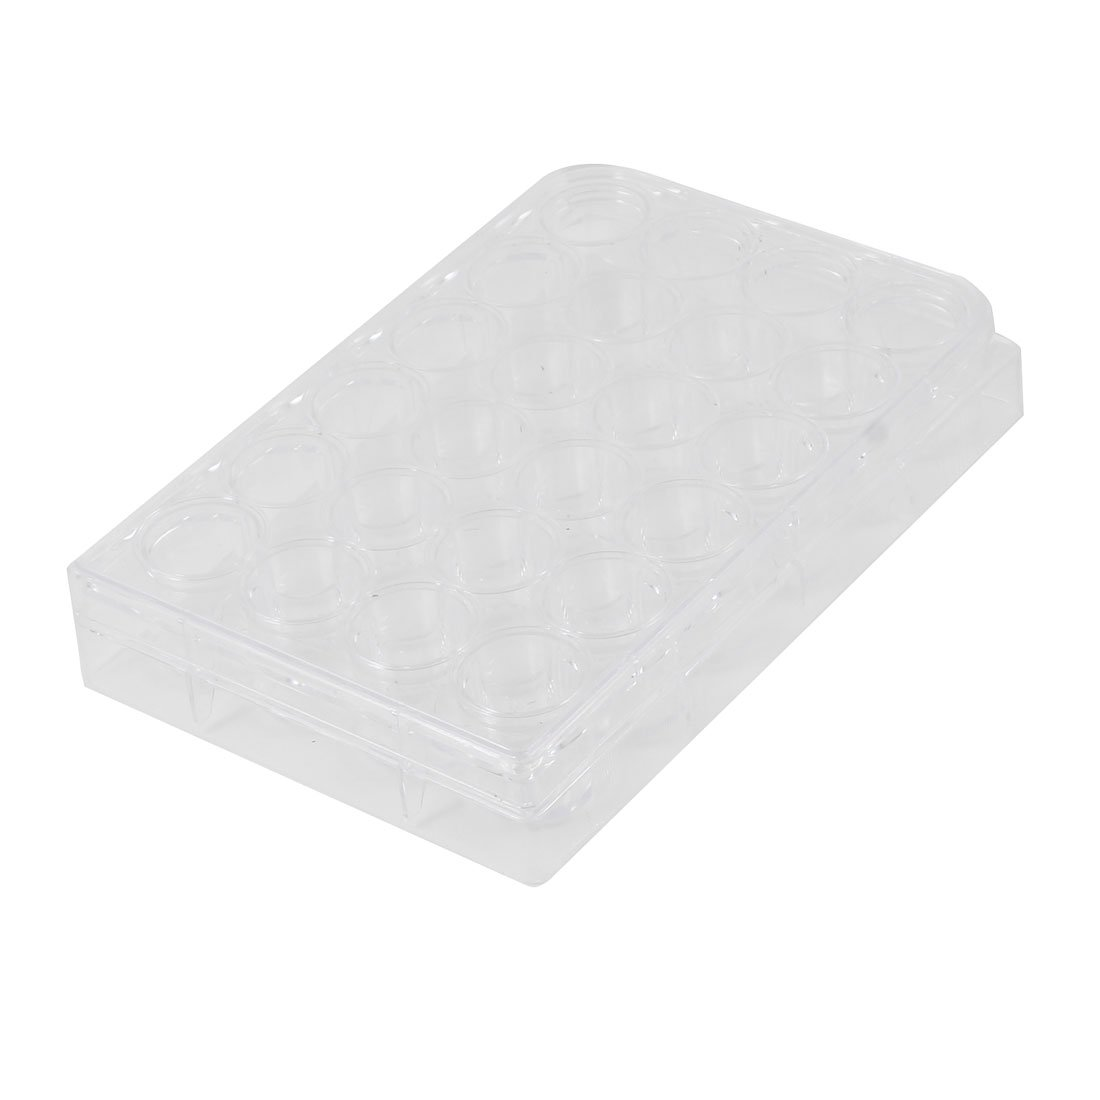 Sourcingmap Clear Plastic Rectangle Shape 24 Compartments Cell Culture Plate a13032300ux0097